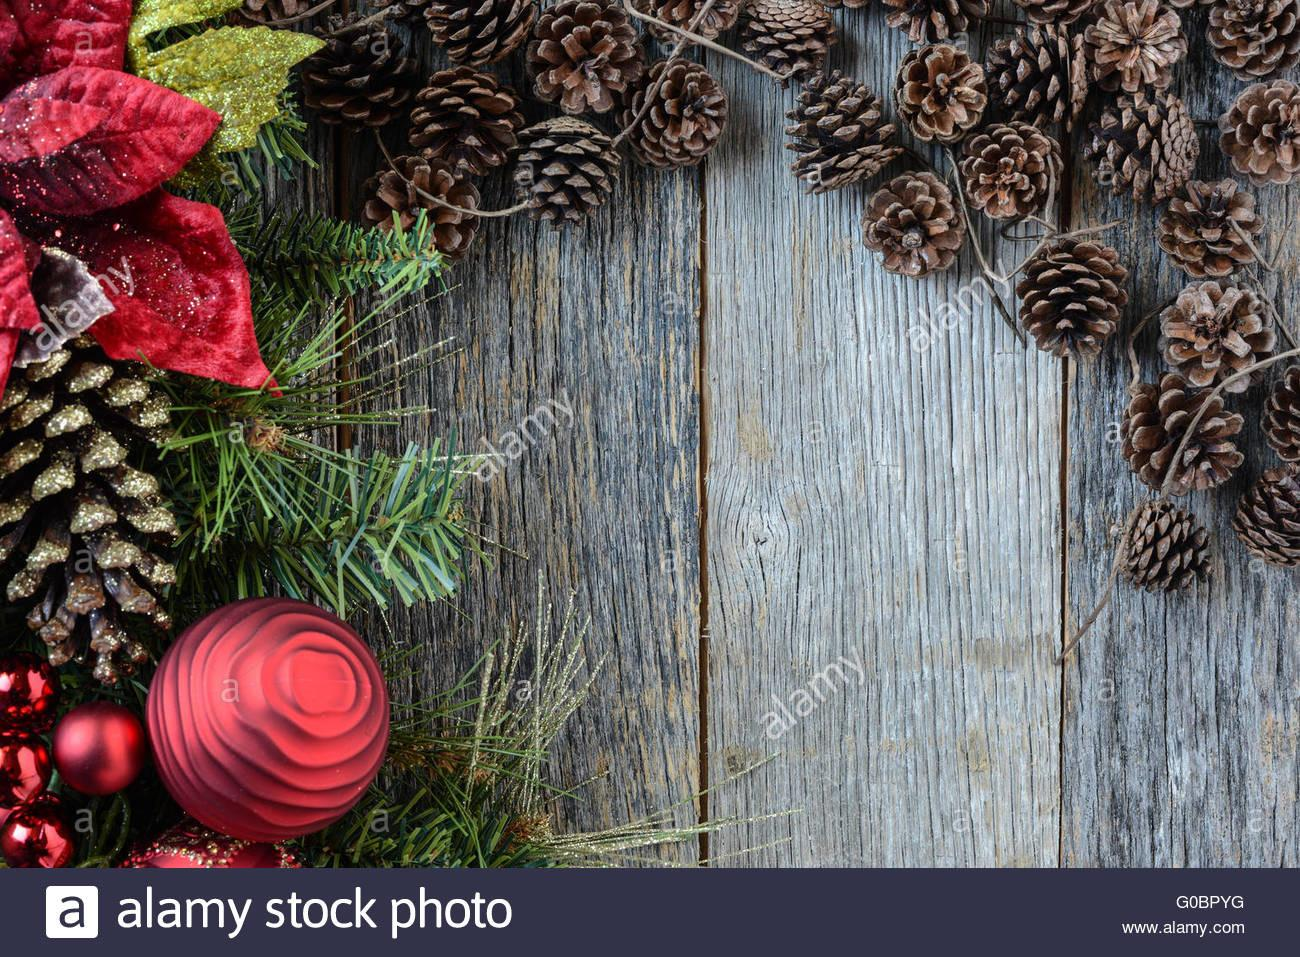 Christmas Decorations Pine Cones Rustic Wood